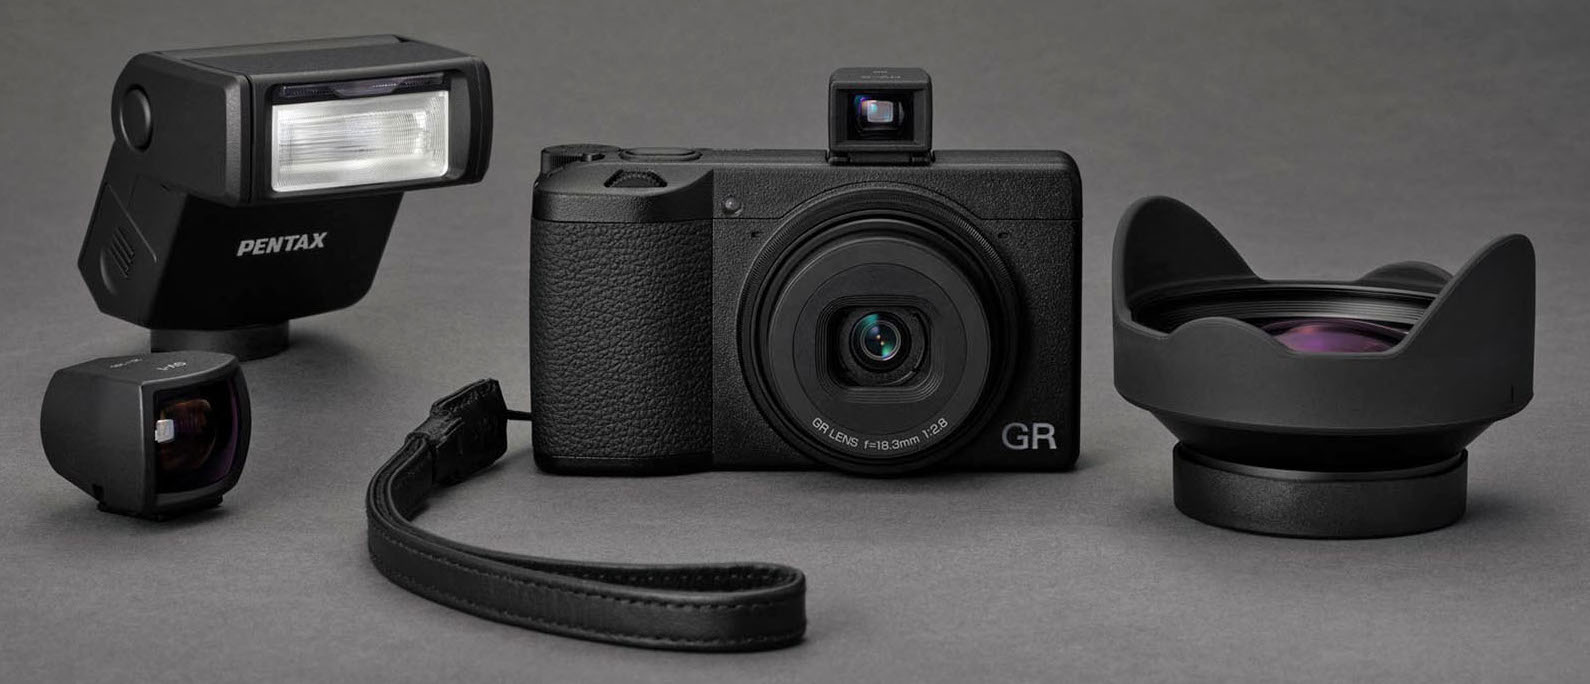 Ricoh GR III camera accessories - Pentax Rumors